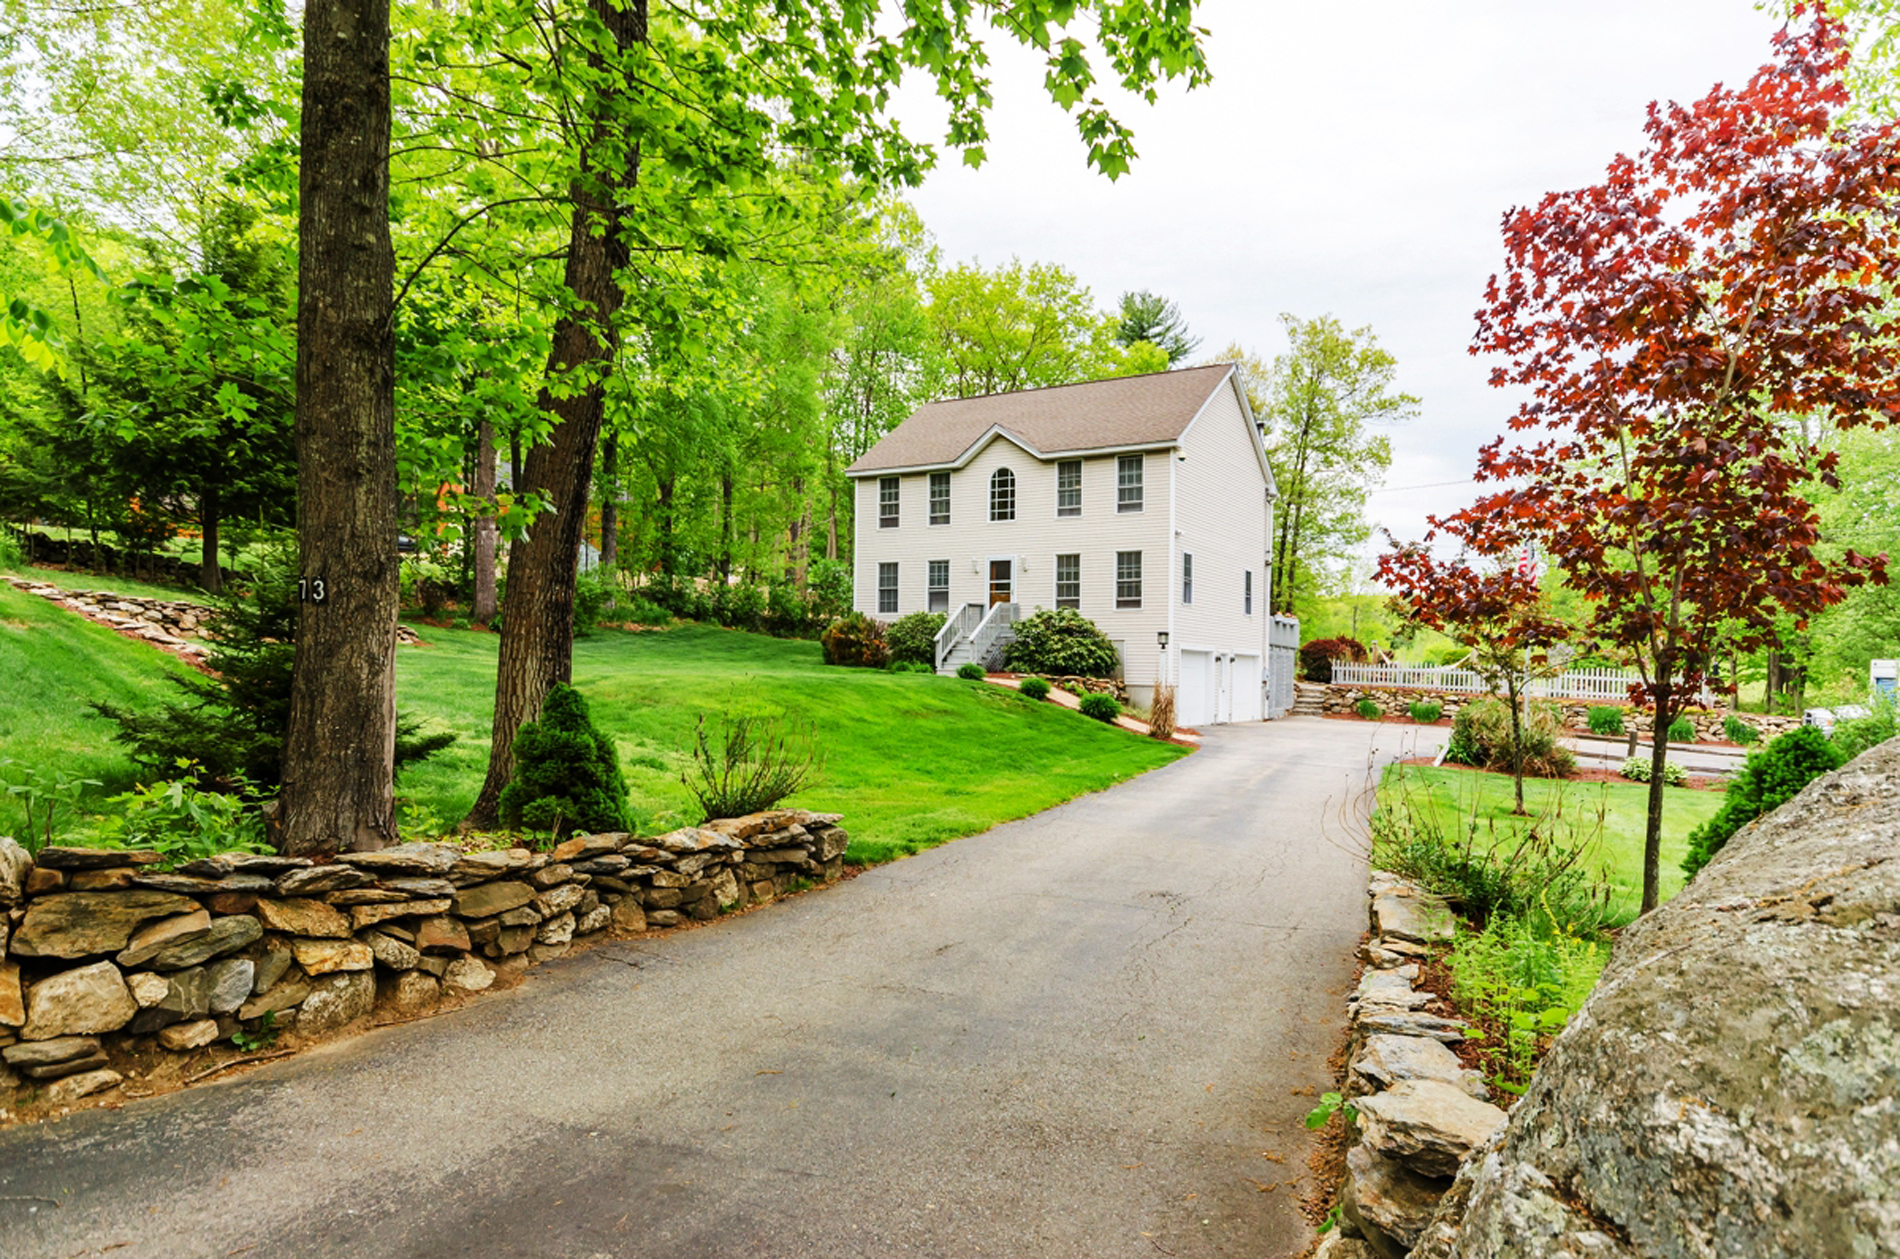 Single Family Home for Sale at 73 Ridge Rd, Deerfield Deerfield, New Hampshire, 03037 United States